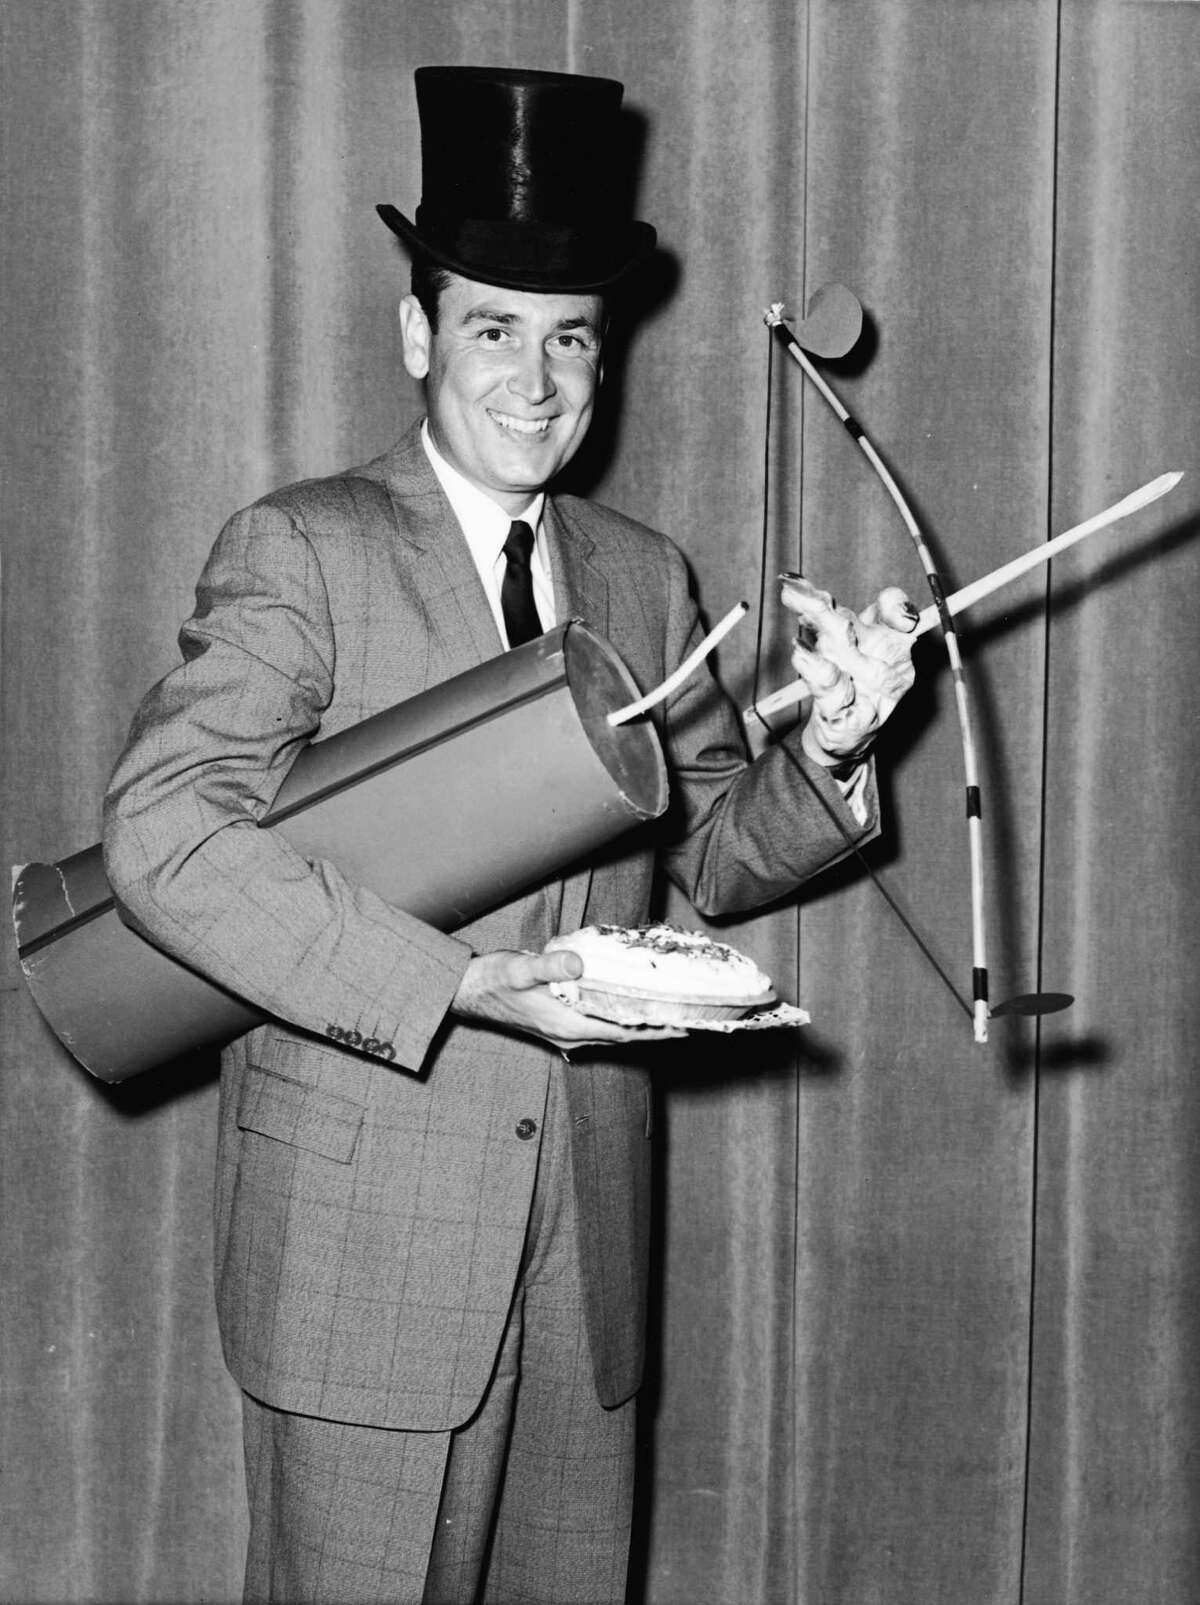 1957: Bob Barker poses with a number of props in preparation for hosting the television show